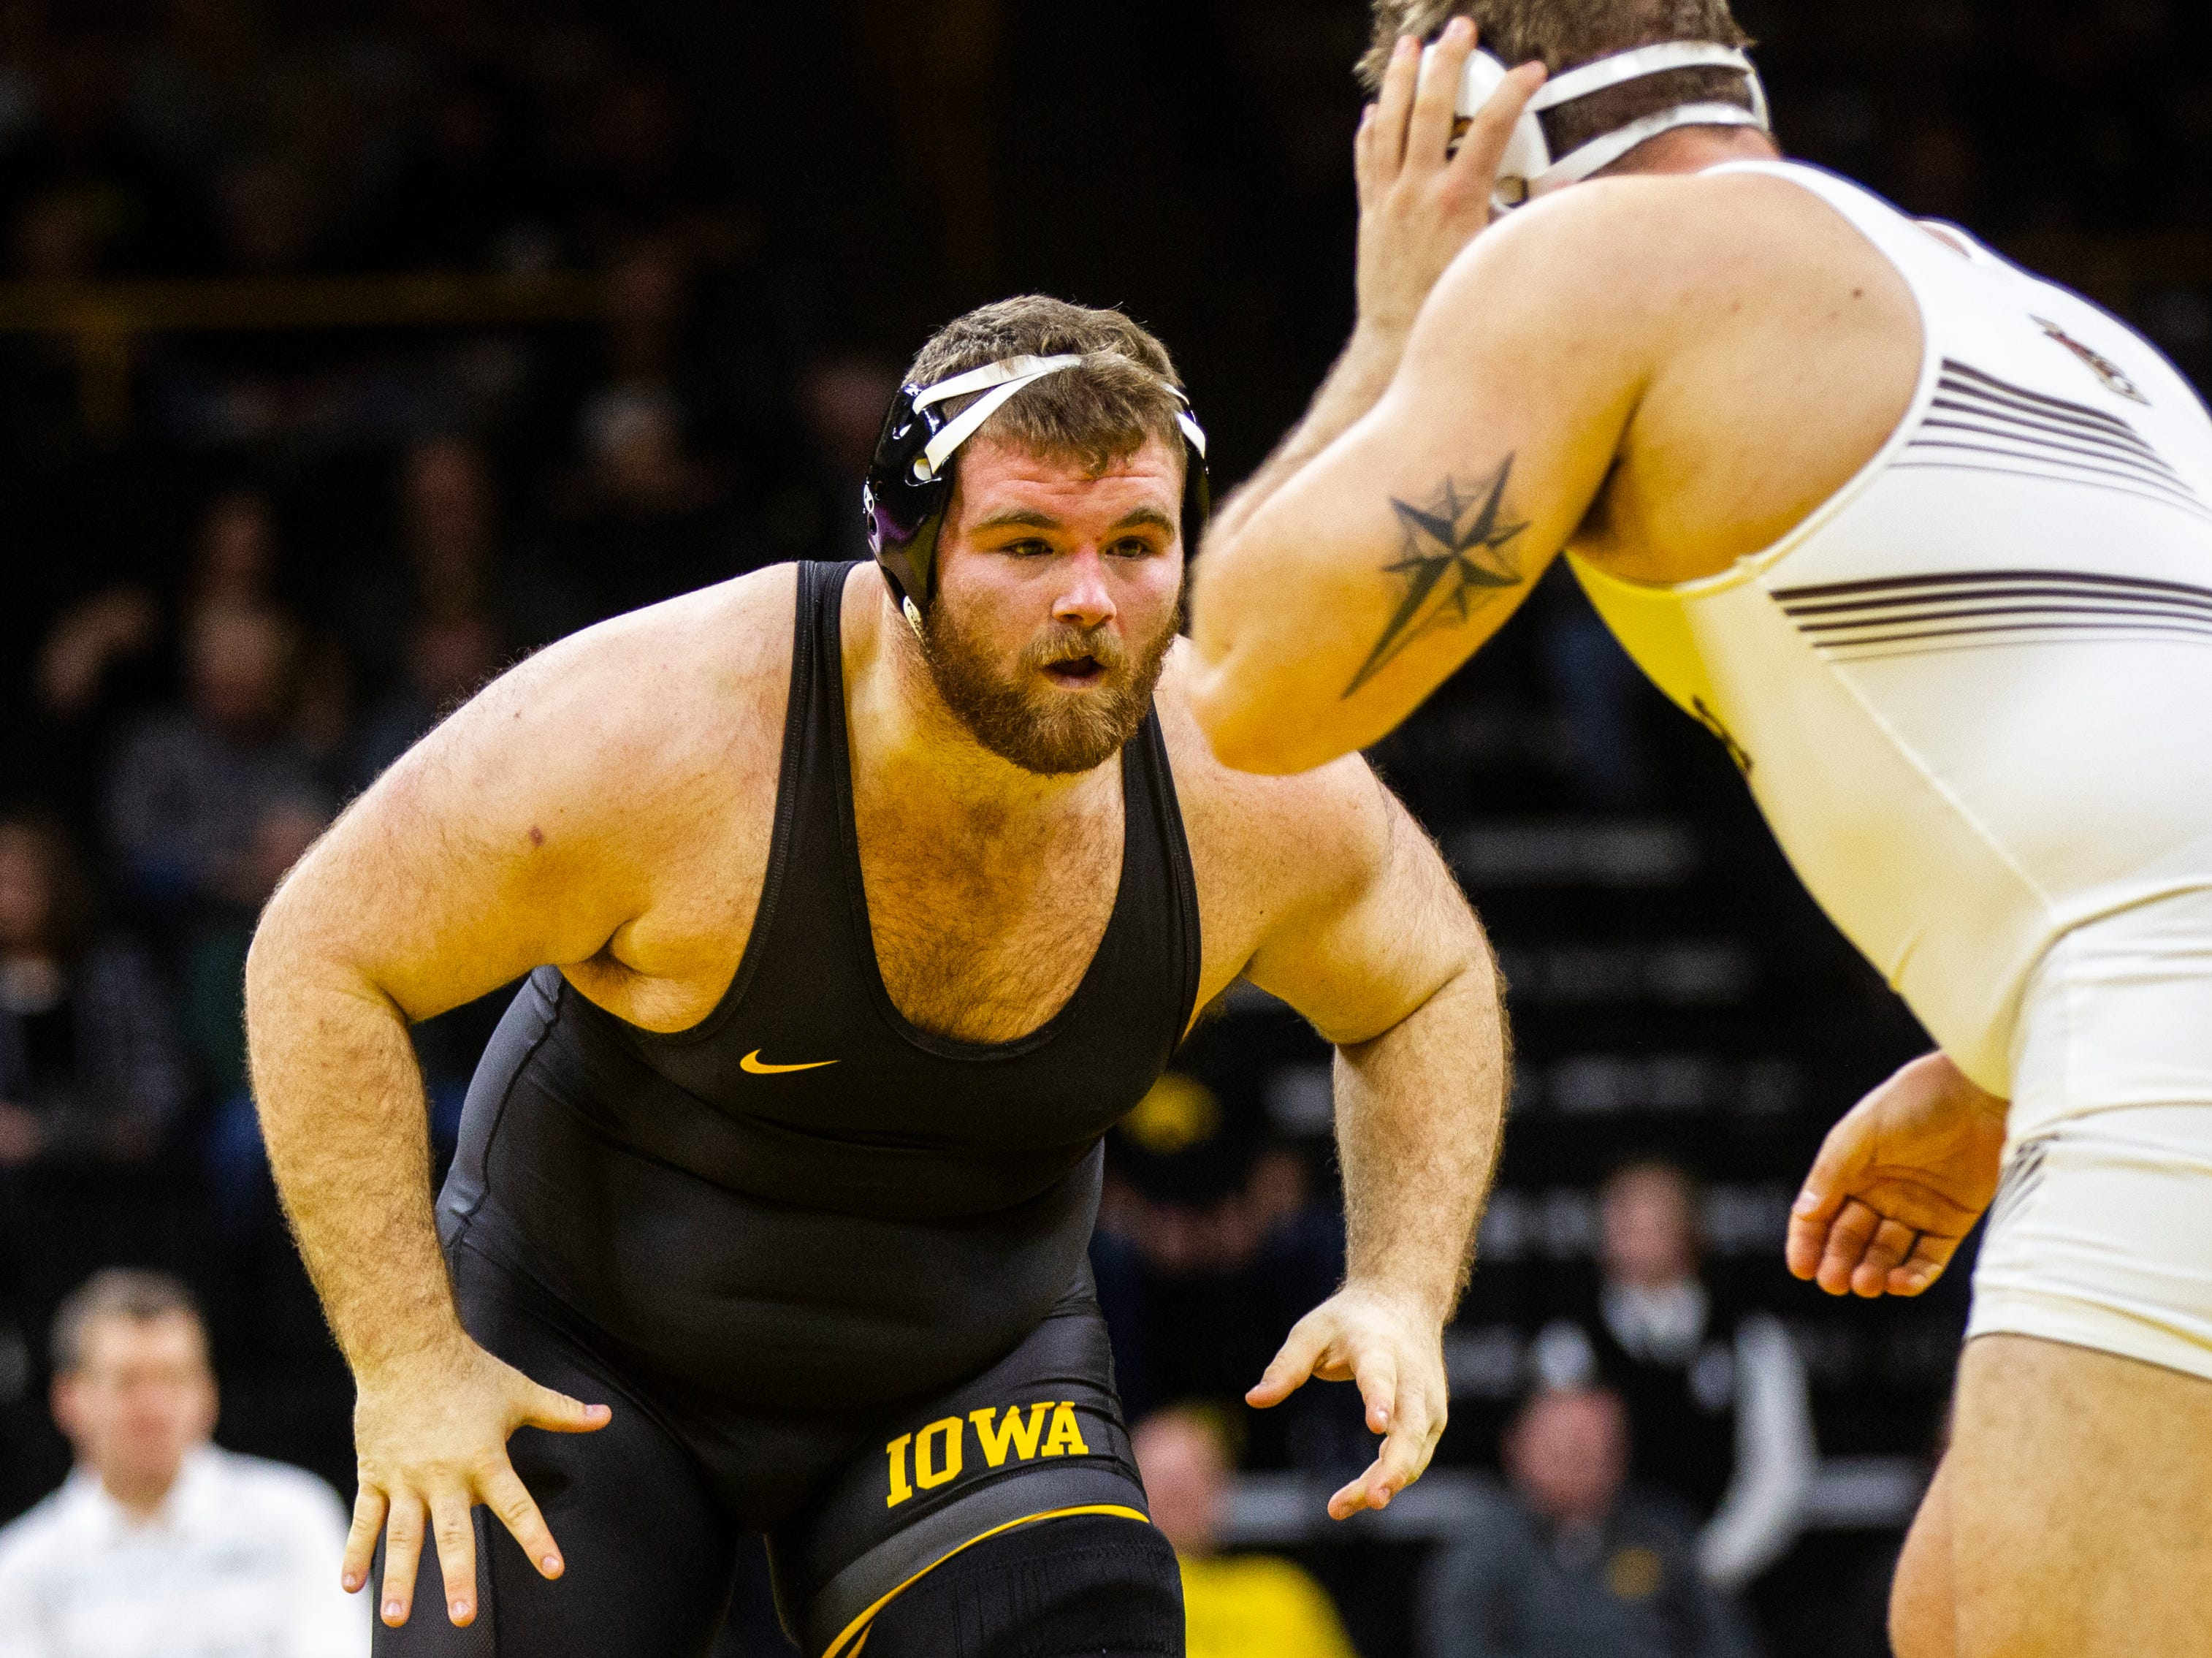 Iowa's Aaron Costello, left, wrestles Lehigh's Jordan Wood at 285 during a NCAA wrestling dual on Saturday, Dec. 8, 2018, at Carver-Hawkeye Arena in Iowa City.